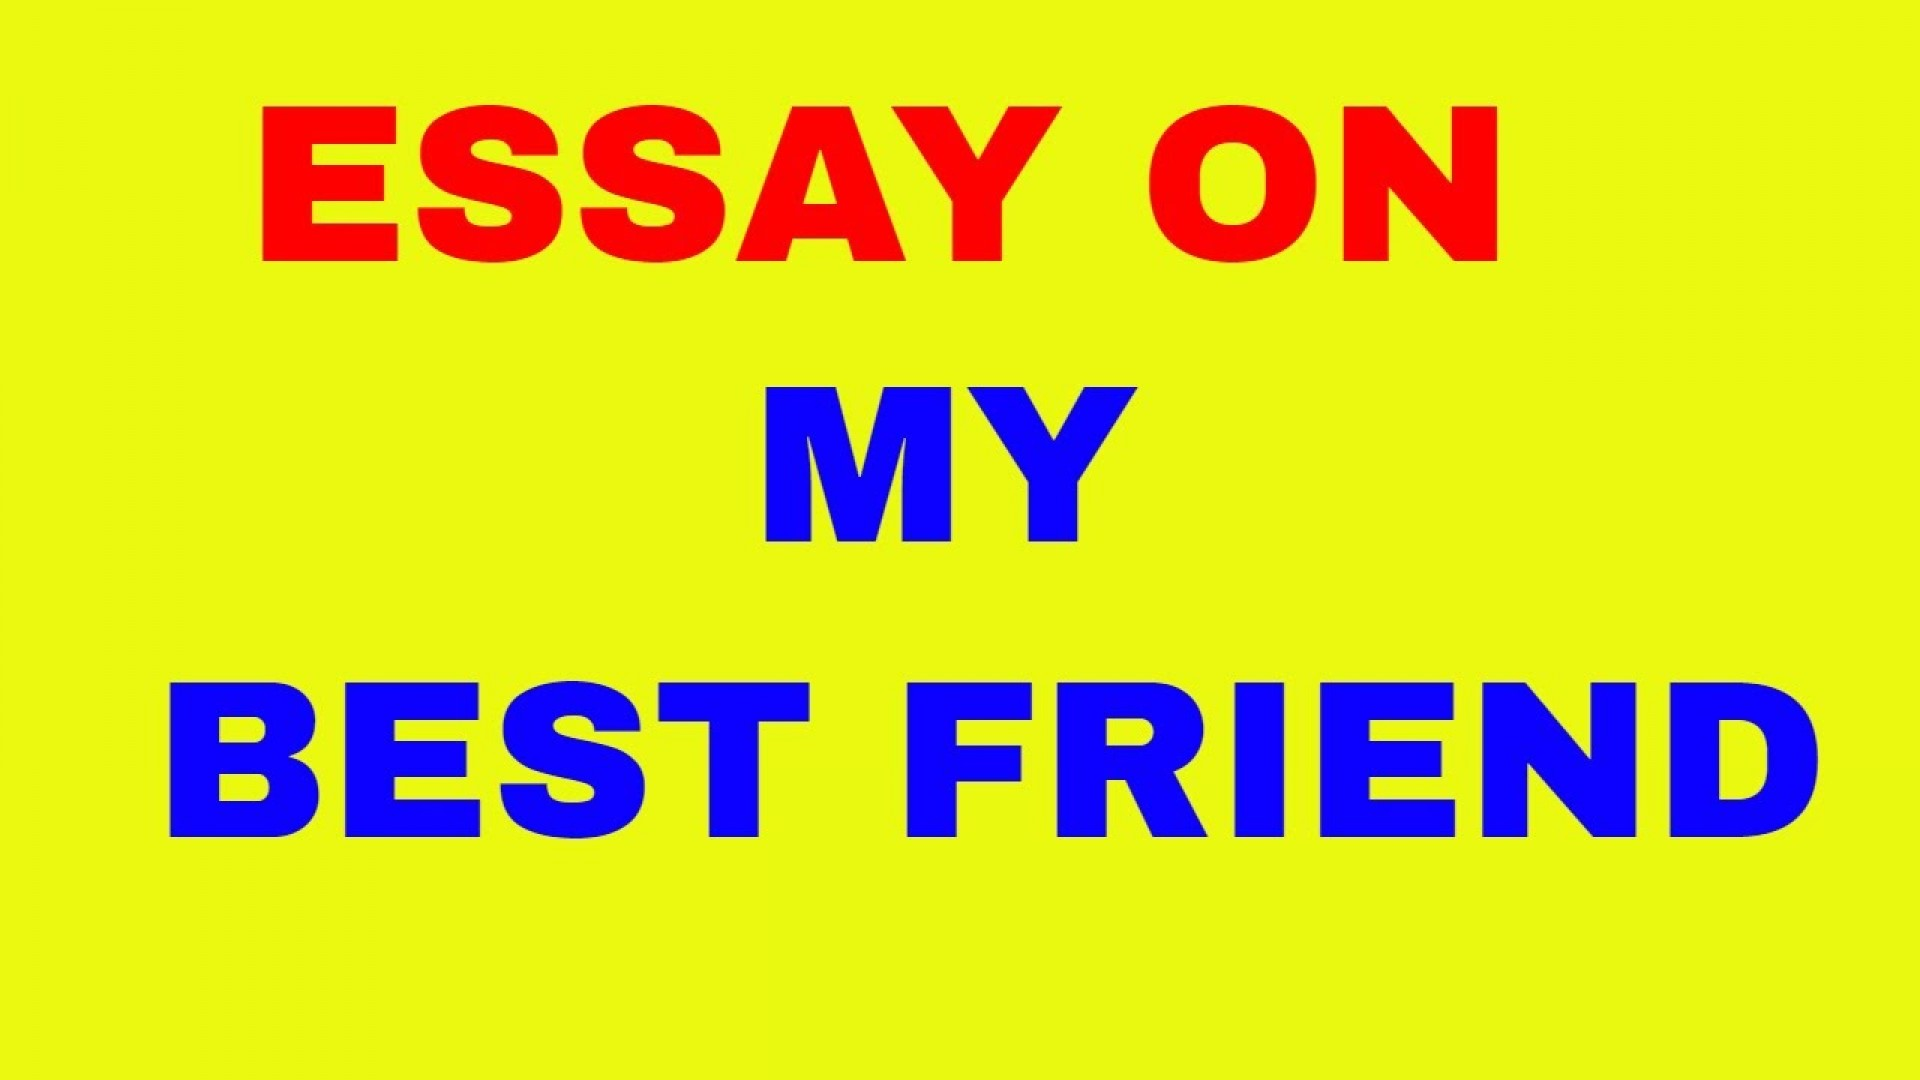 013 Maxresdefault My Friend Essay Awesome In Marathi For Class 5 1920